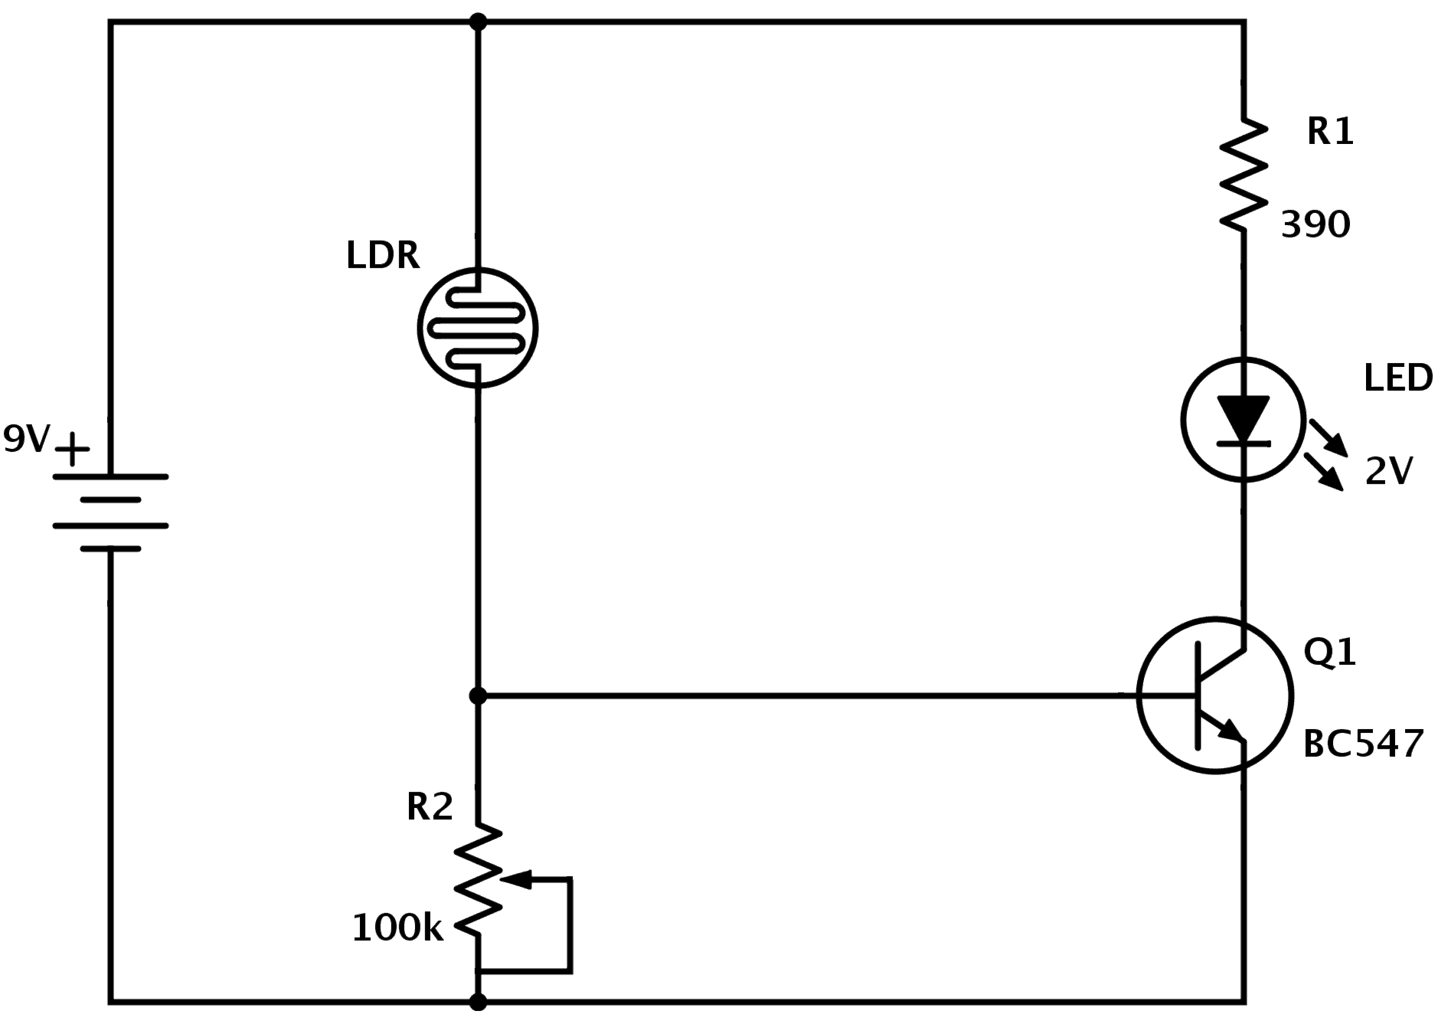 LDR circuit improved circuit diagram how to read and understand any schematic how to read schematic wiring diagrams at gsmx.co